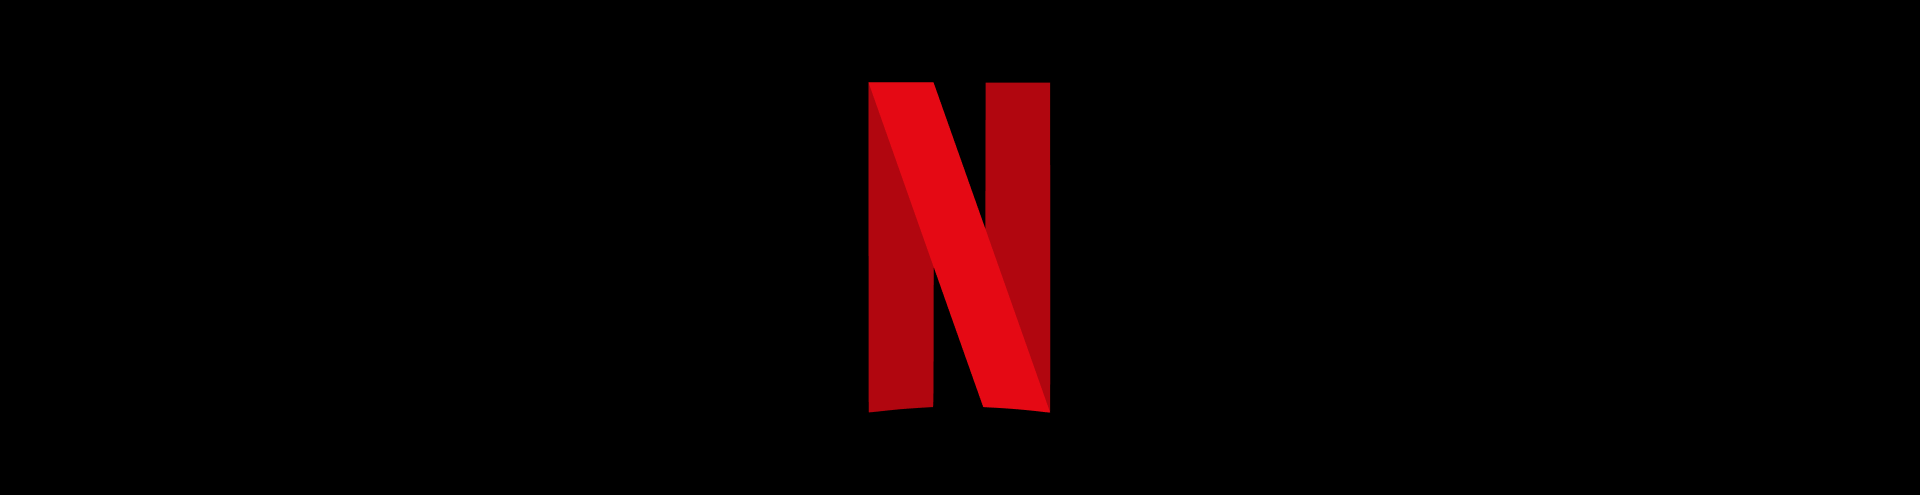 What You Need to Know to Start a Streaming Service Like Netflix